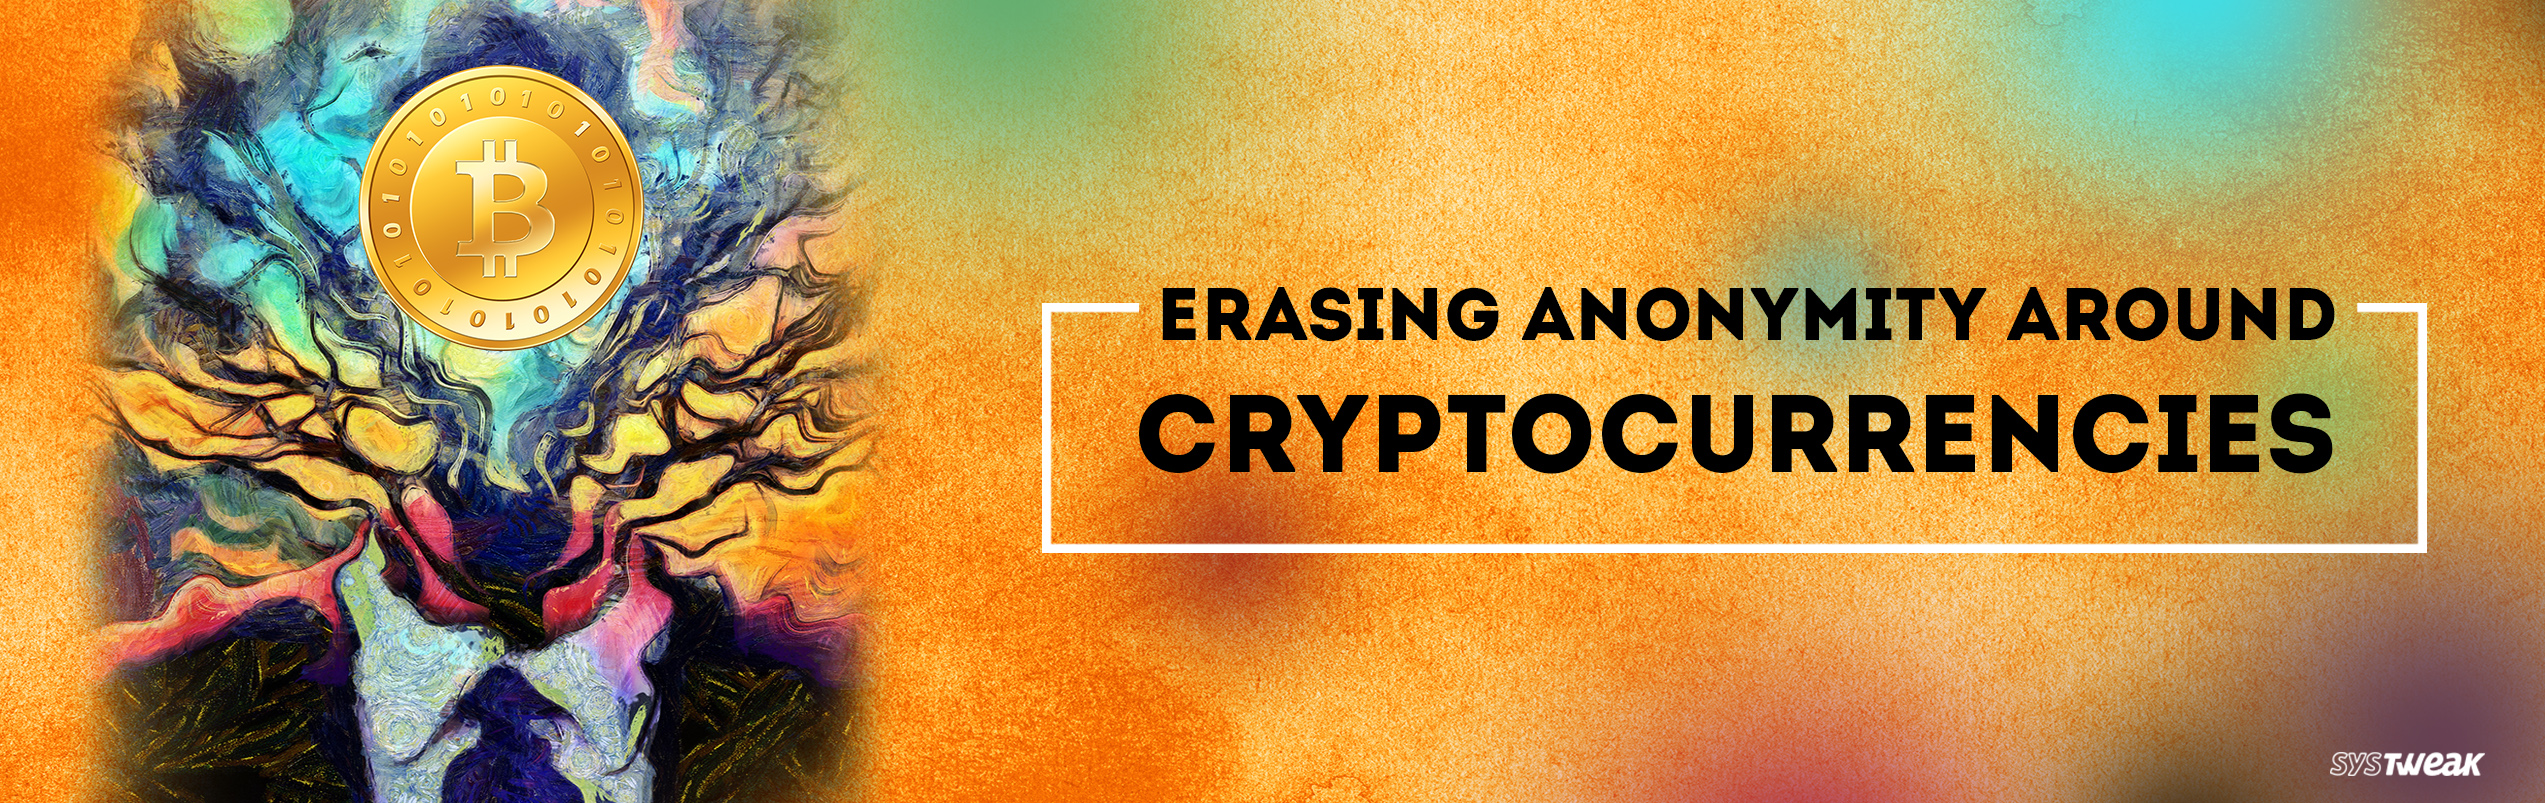 Should the Anonymity Around Cryptocurrencies Be Erased?